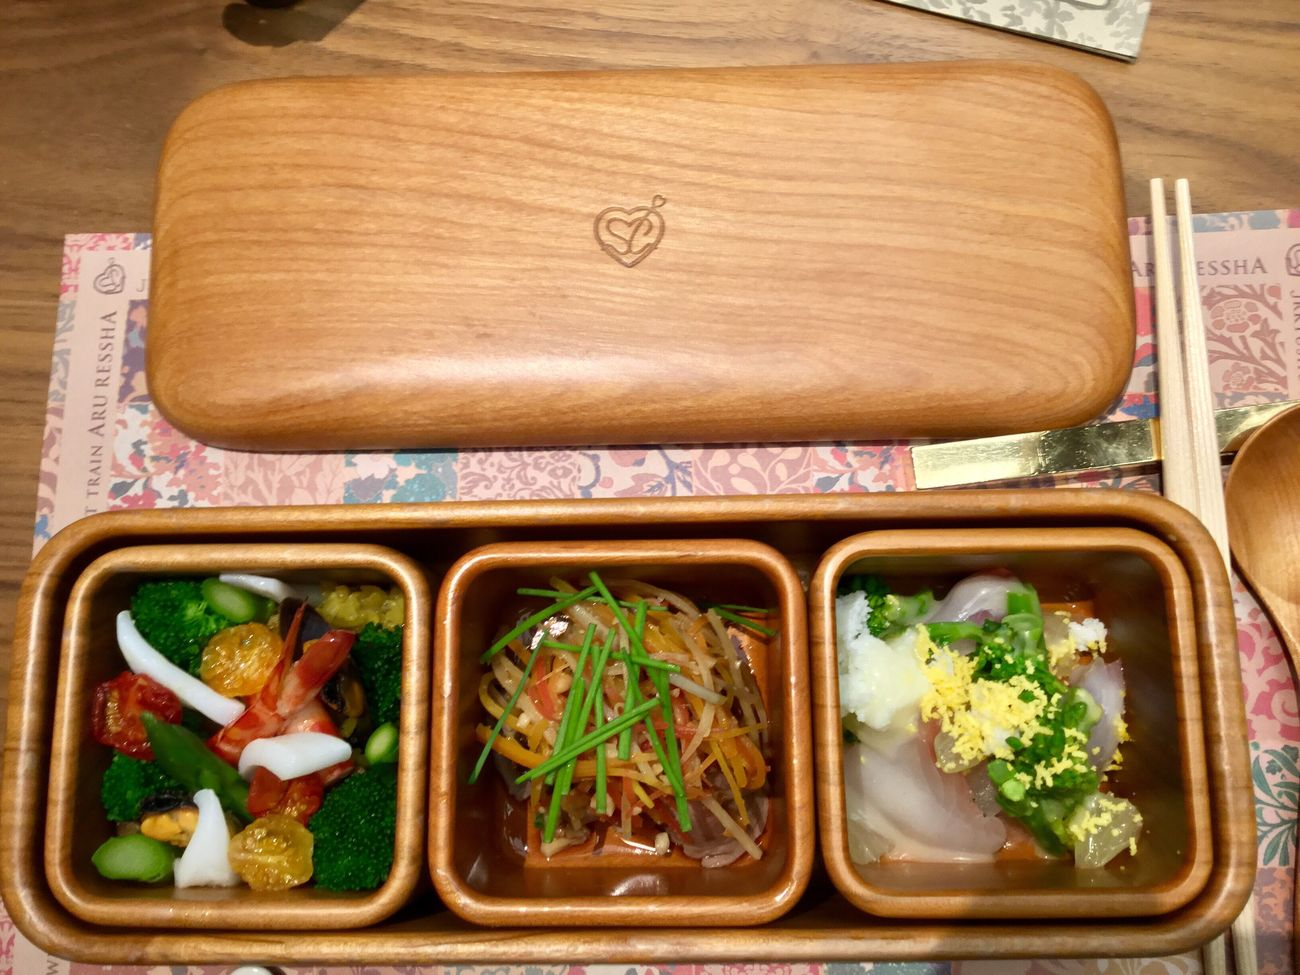 One more thing Wooden Texture Lunch Box Ready-to-eat JR KYUSHU SWEET TRAIN「或る列車」 NARISAWA BENTO Food Photography IPod Touch Photography 33mm No Finder No Filter 14:48 ( JST ) omake 😉 plus